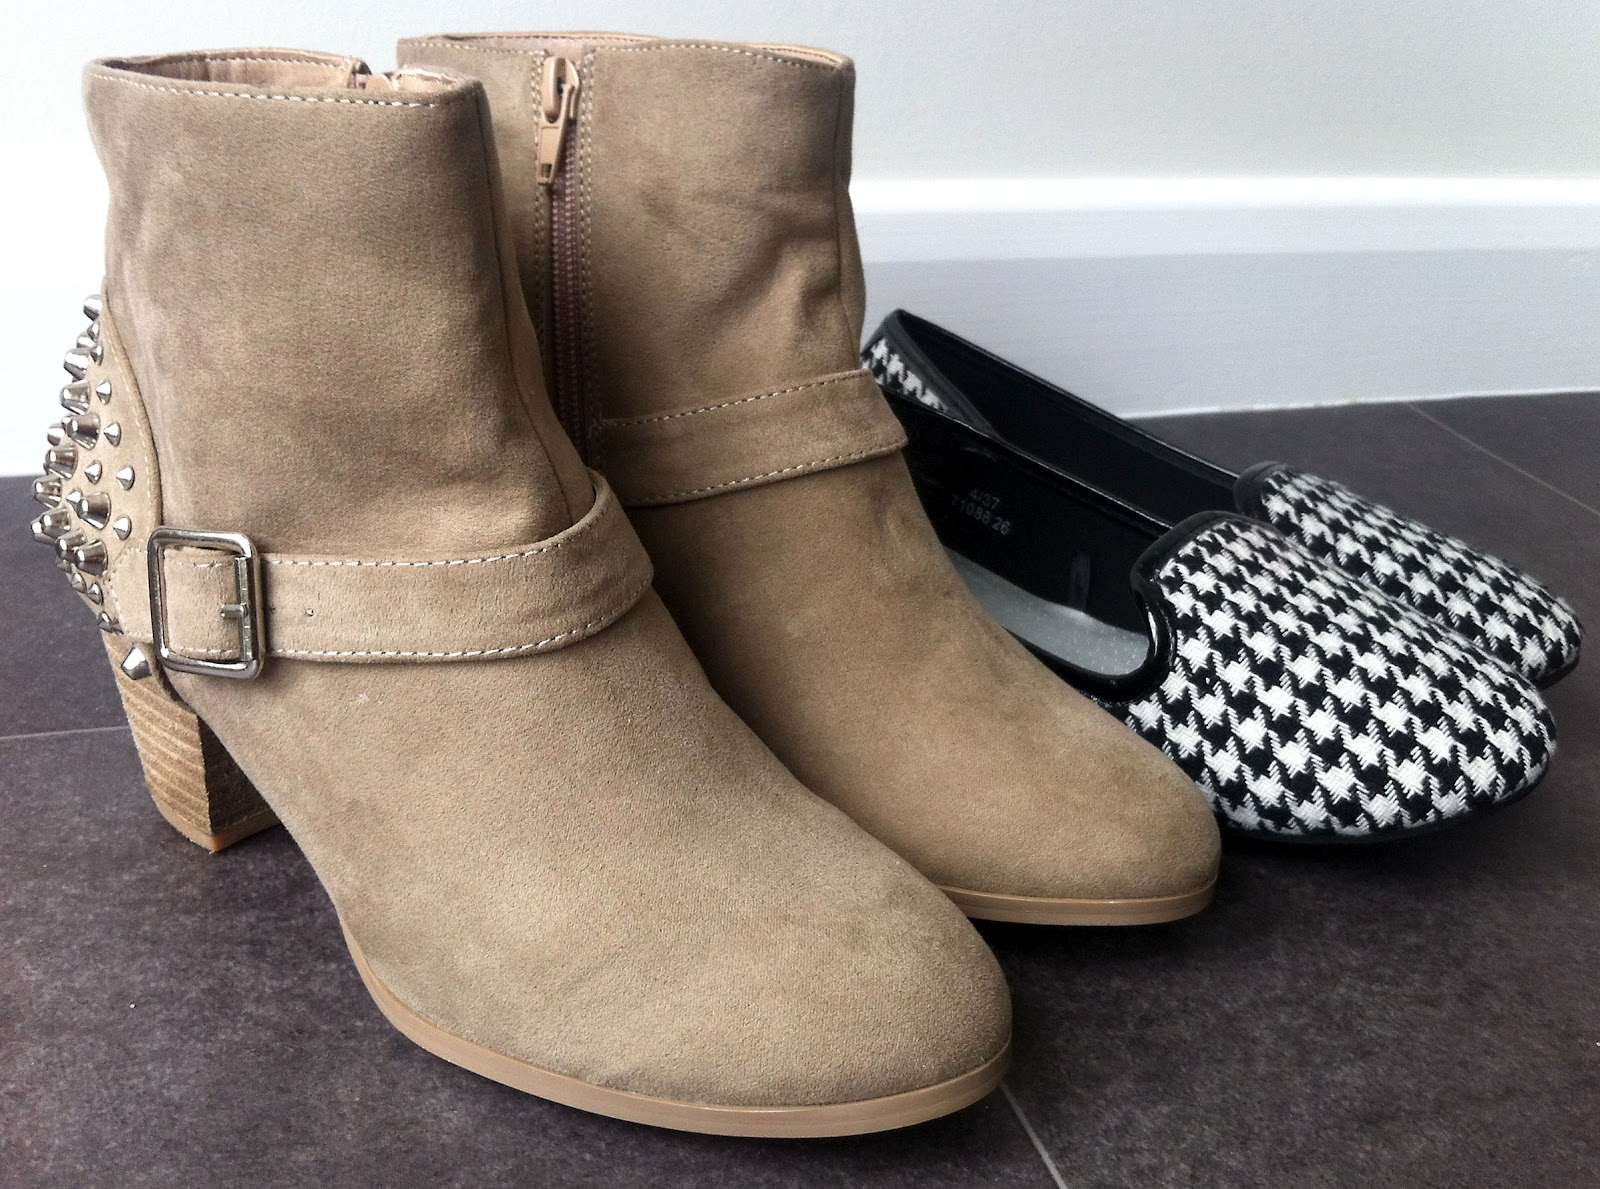 3fd815dad1a primark shoes | eBay / Euro size 36 in uk